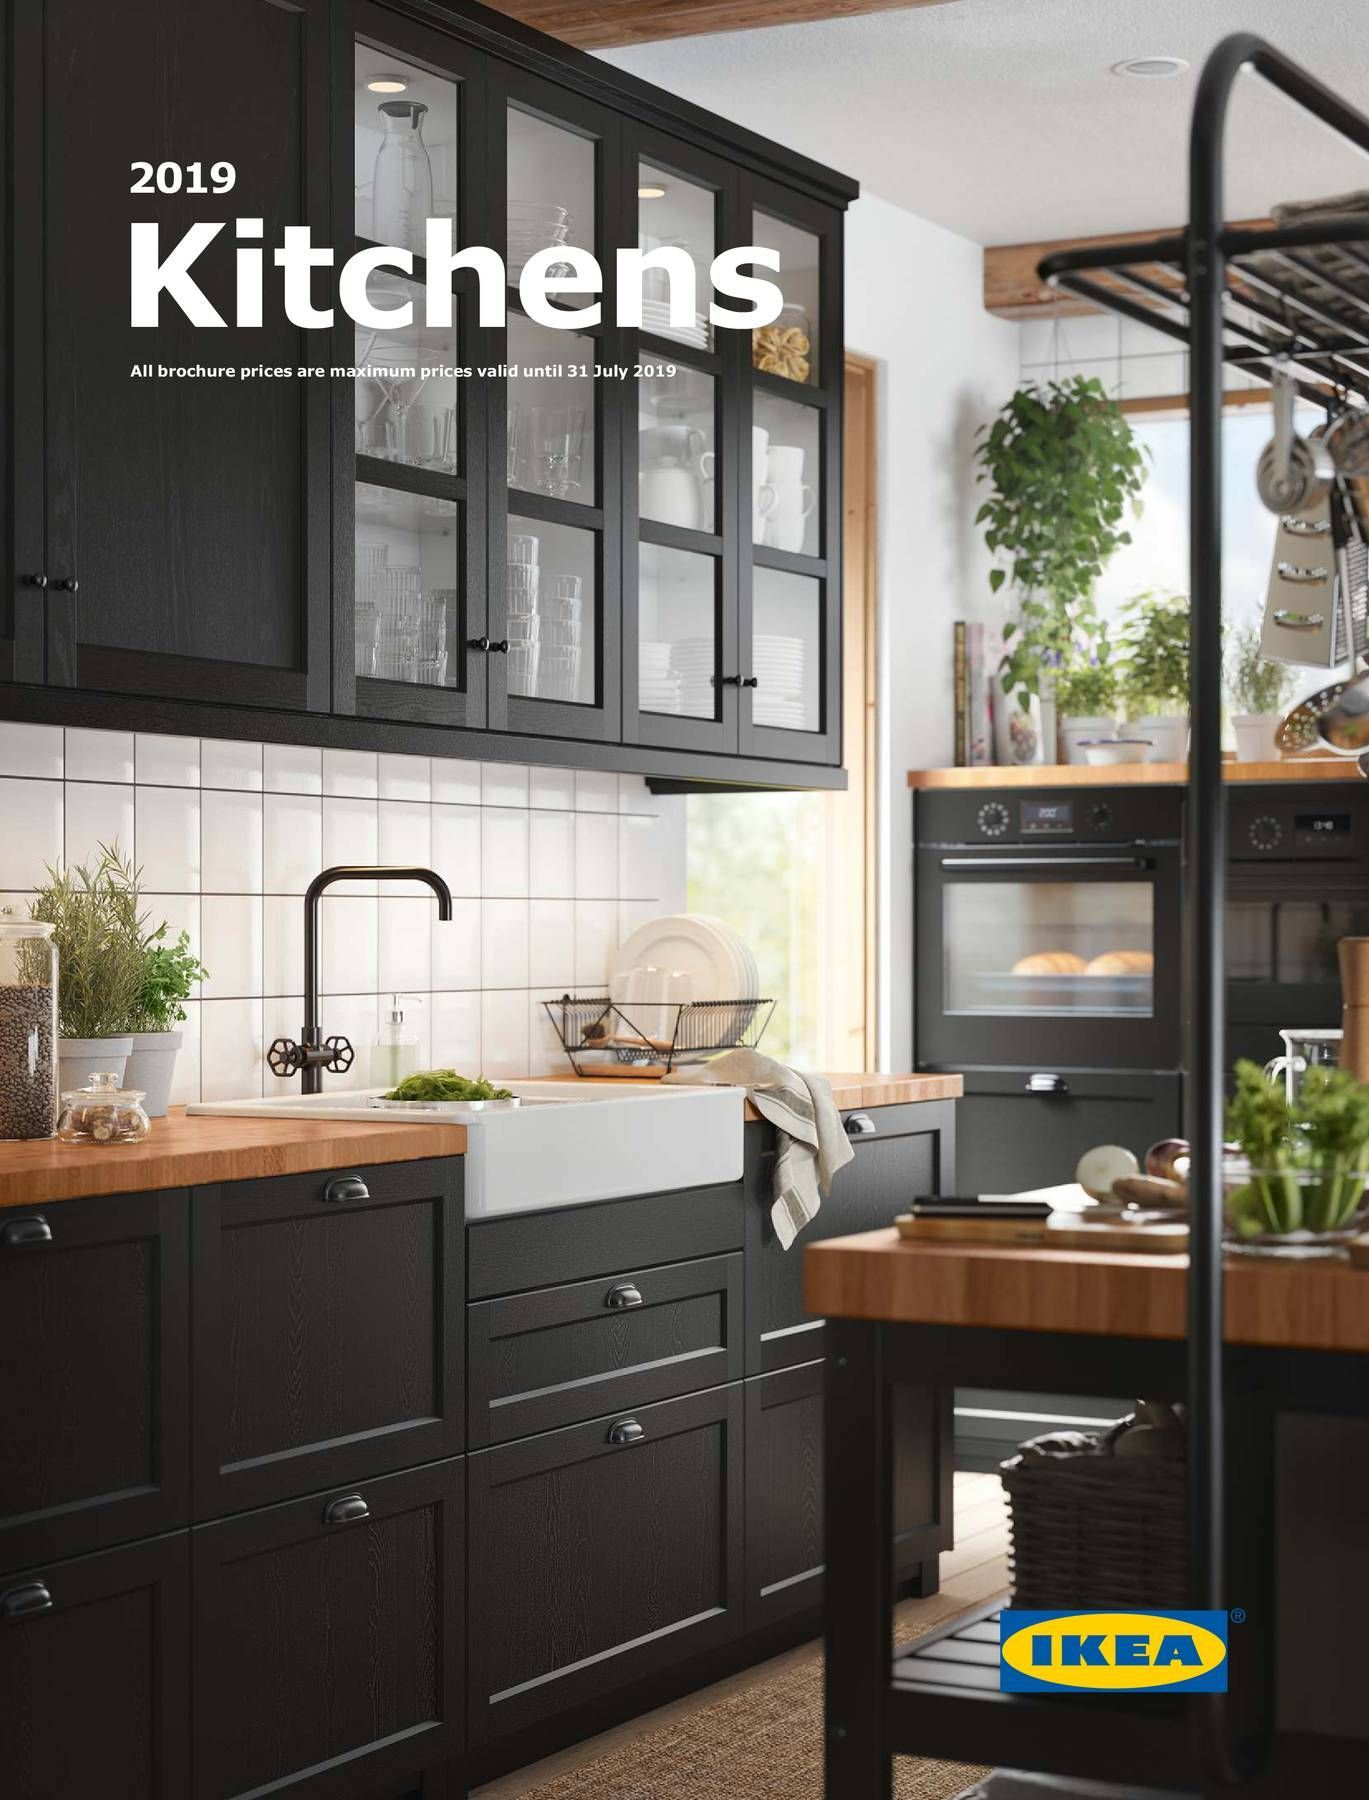 Ikea Kitchen Ideas  Kitchen design, Kitchen interior, Modern kitchen